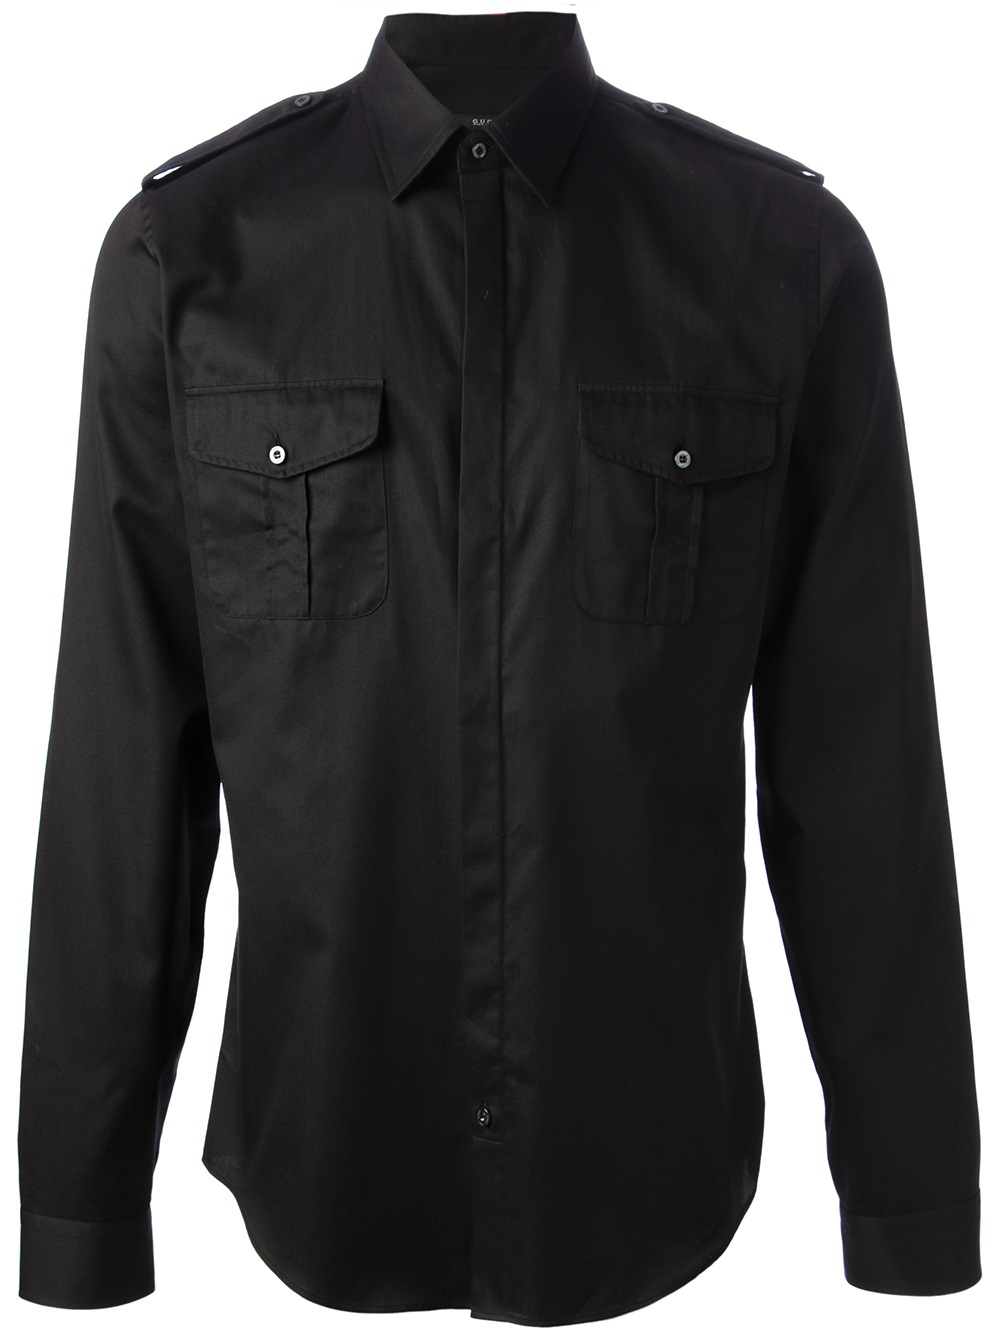 Find shortsleeve military shirt men at ShopStyle. Shop the latest collection of shortsleeve military shirt men from the most popular stores - all in.